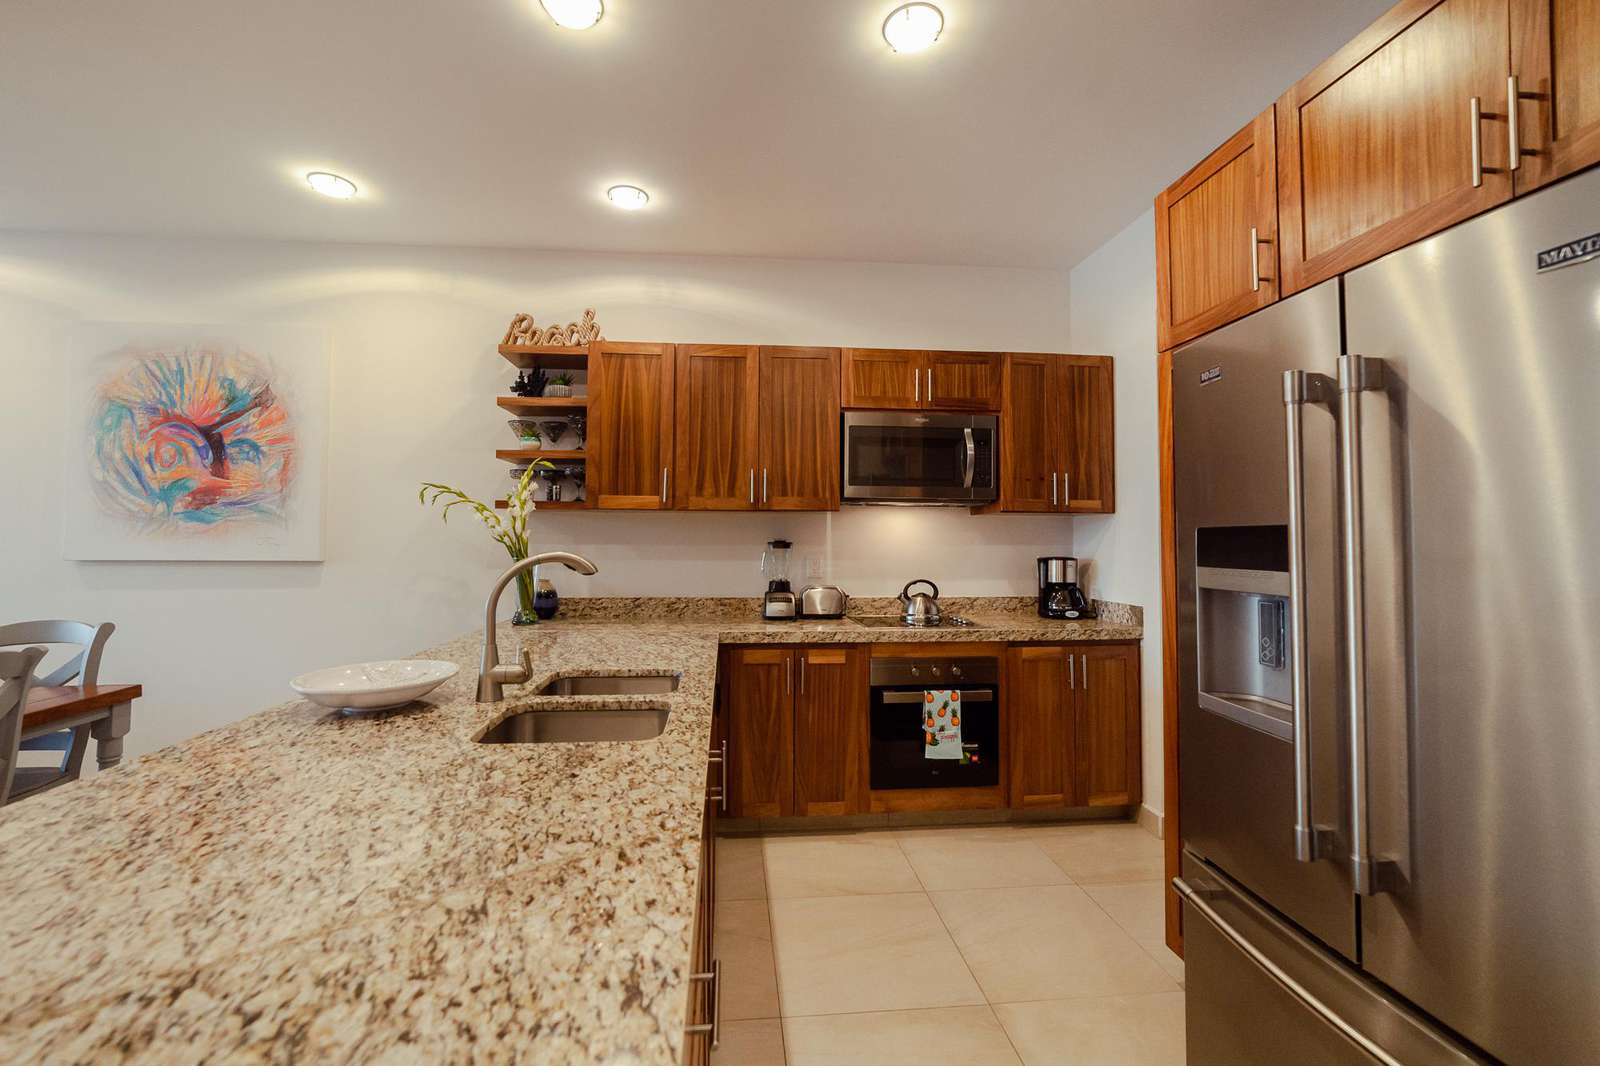 Fully equipped kitchen with stain steel appliances & granite countertops